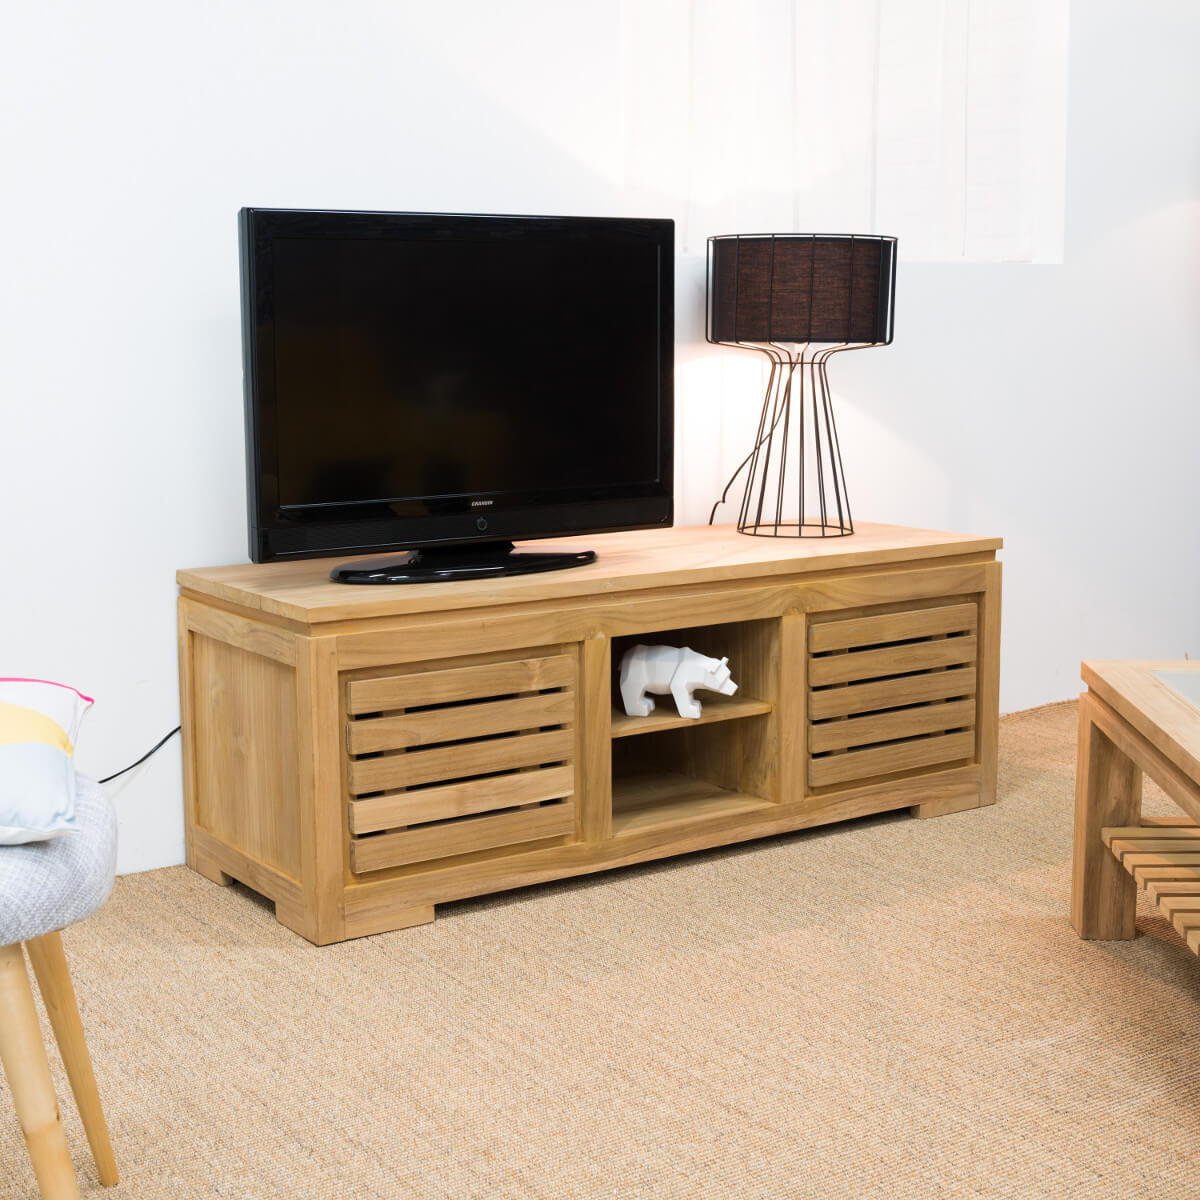 Meuble tv teck meuble tv bois naturel rectangle zen 140 cm for Meuble 70 cm longueur